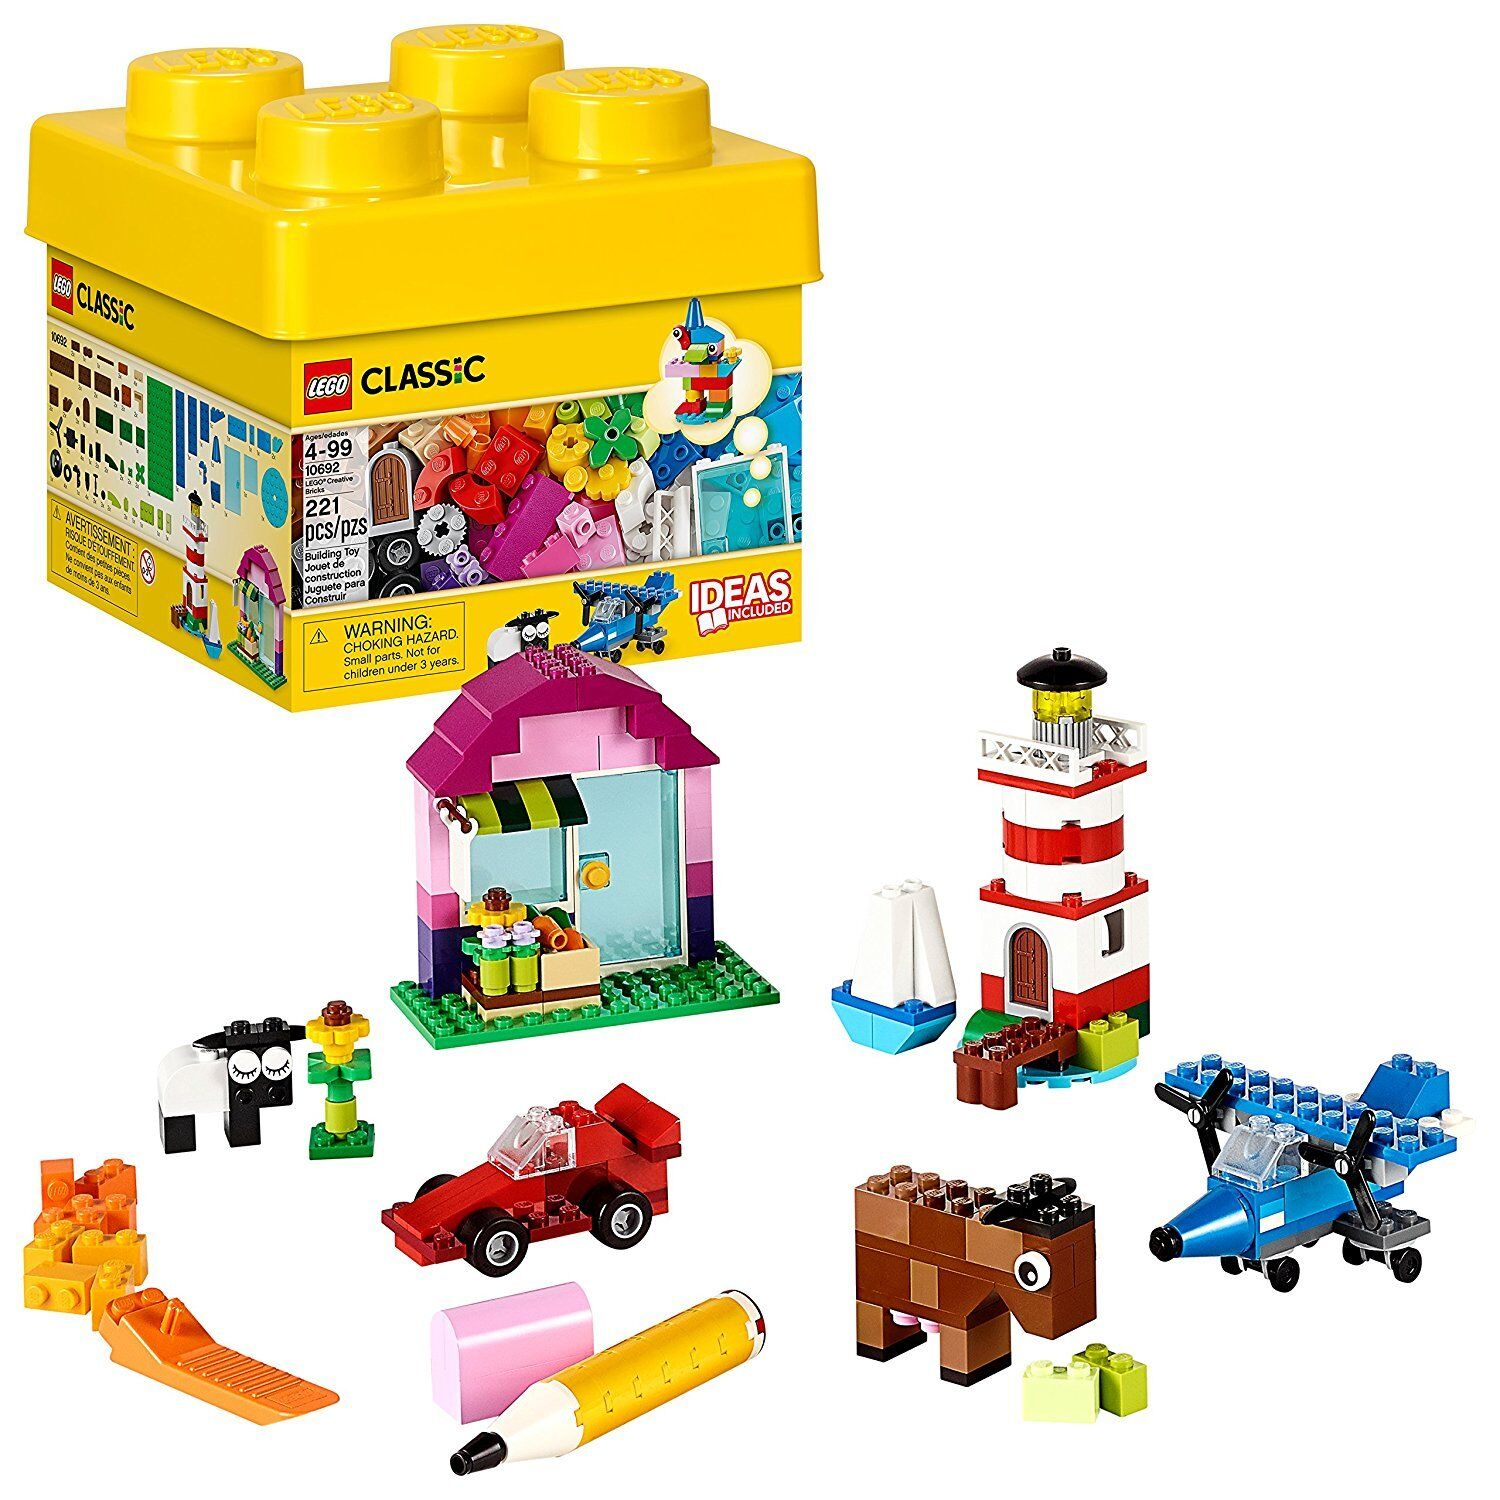 Lego Classic Kids Toys for Boys and Girls Legos Blocks Build